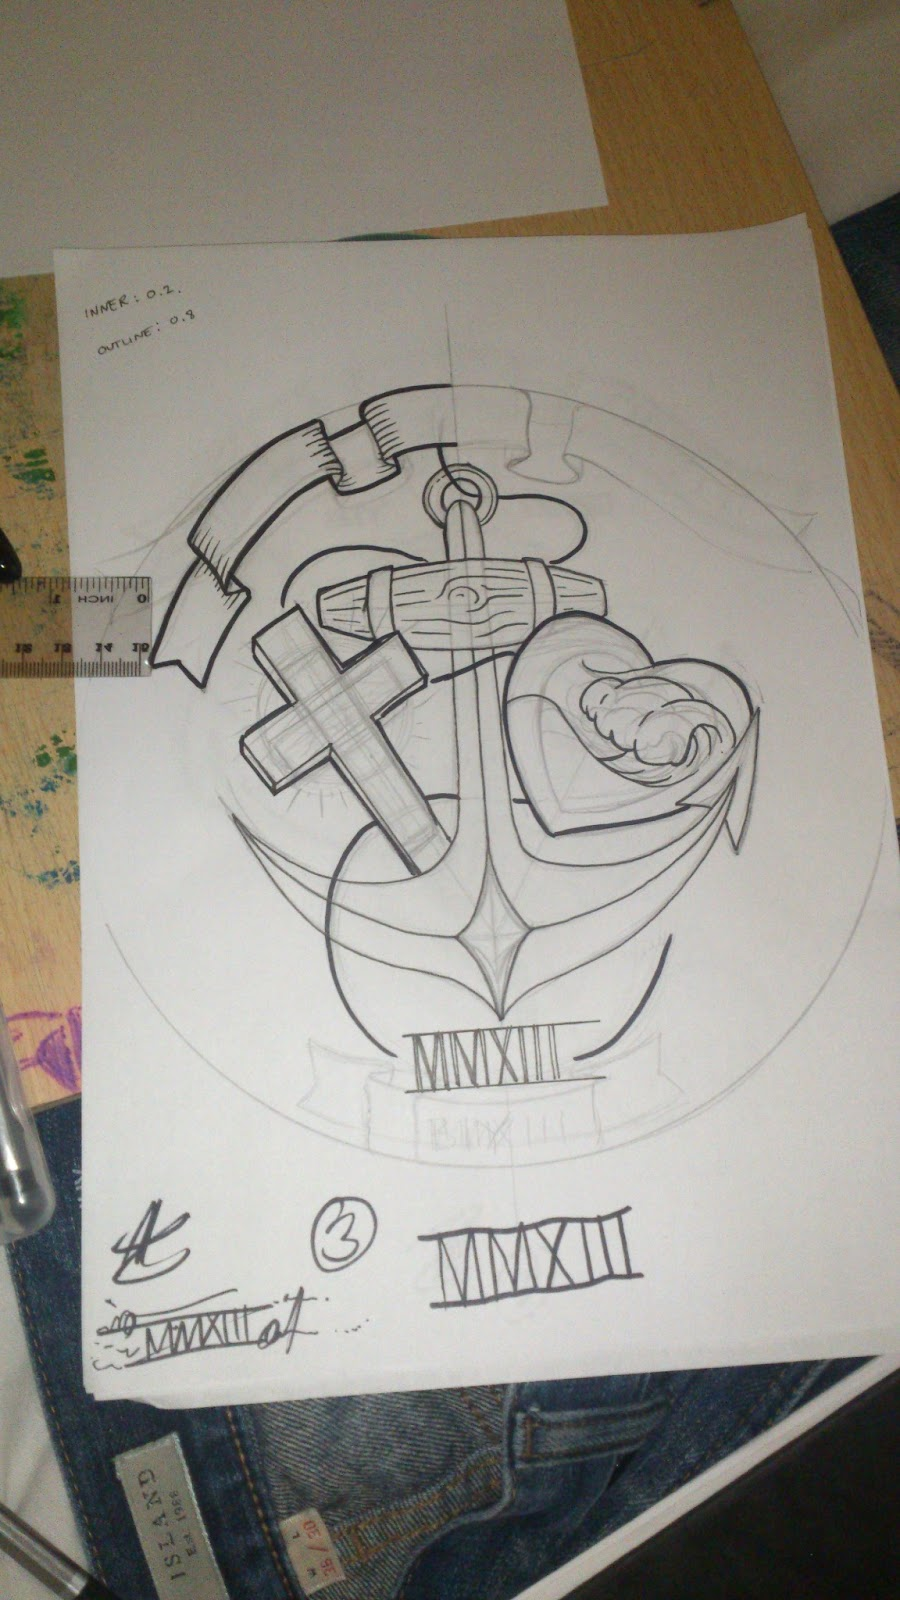 Faith Hope Charity Tattoo Designs Faith hope and charity design